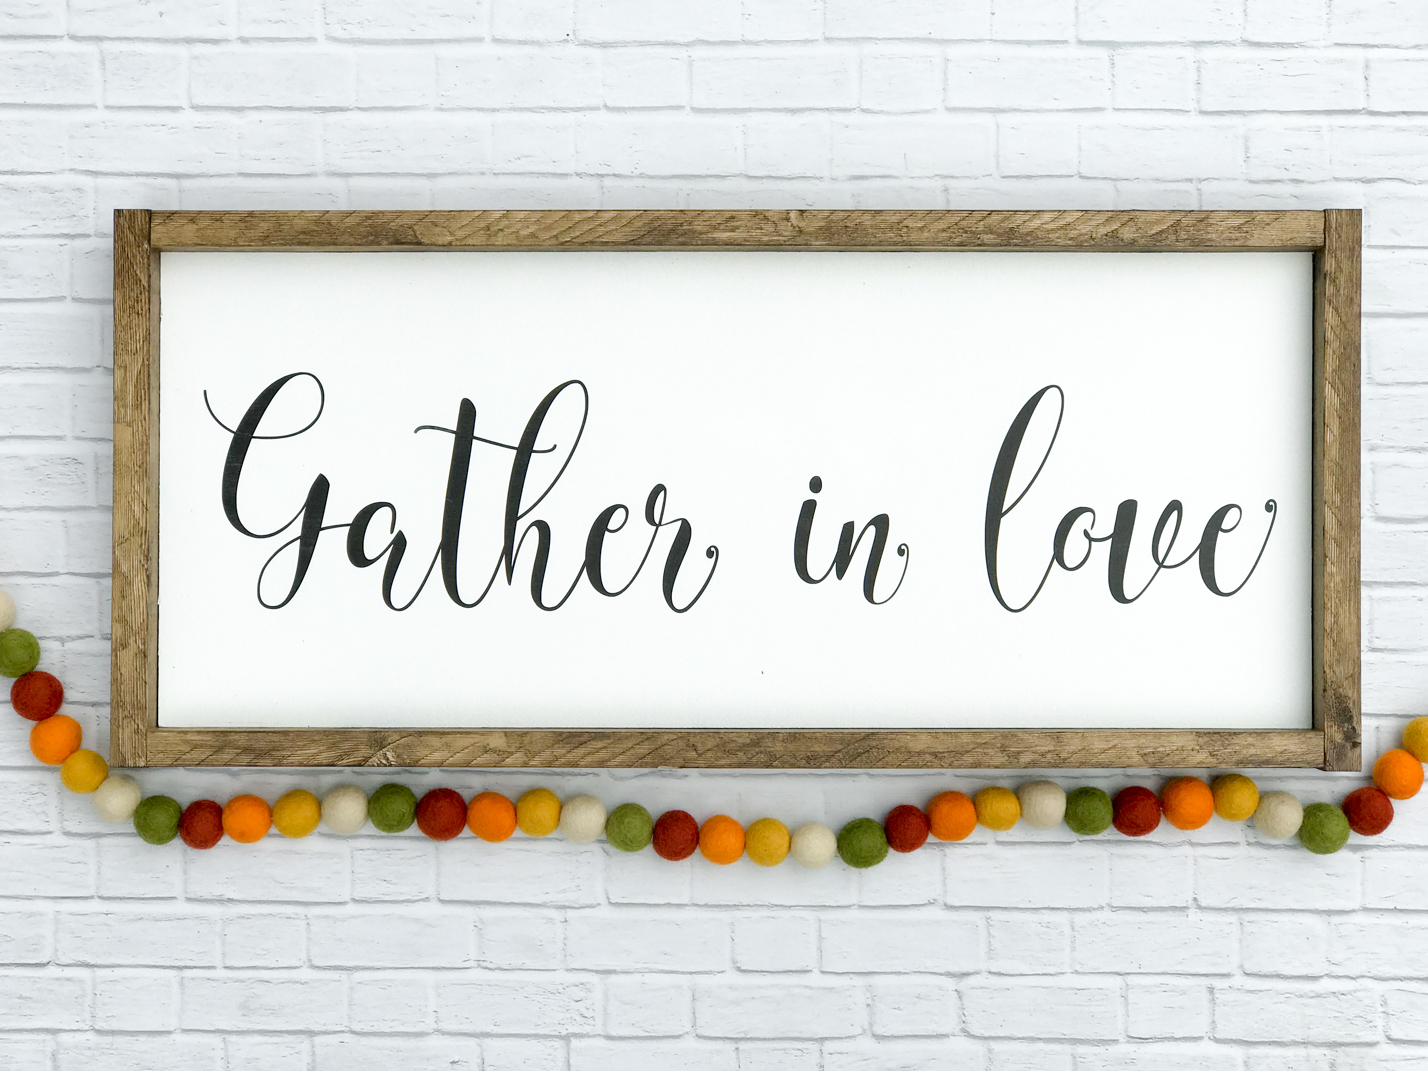 Gather in Love Farmhouse Fall Signs for your fall home decor.